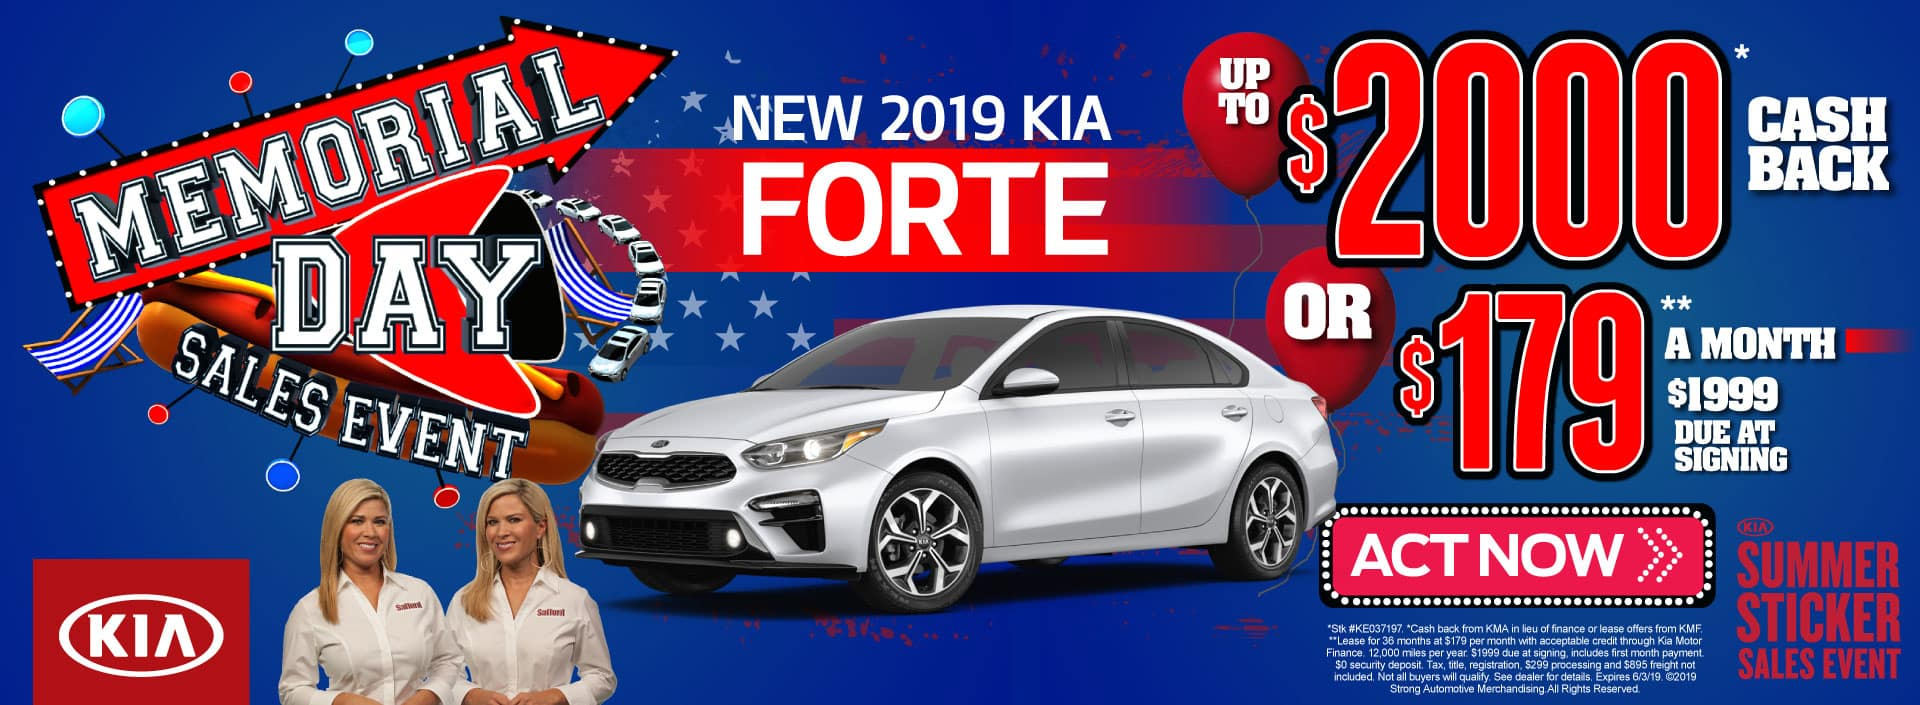 Eastern Shore Kia Safford Kia Of Salisbury Excellent Selection At A Great Price